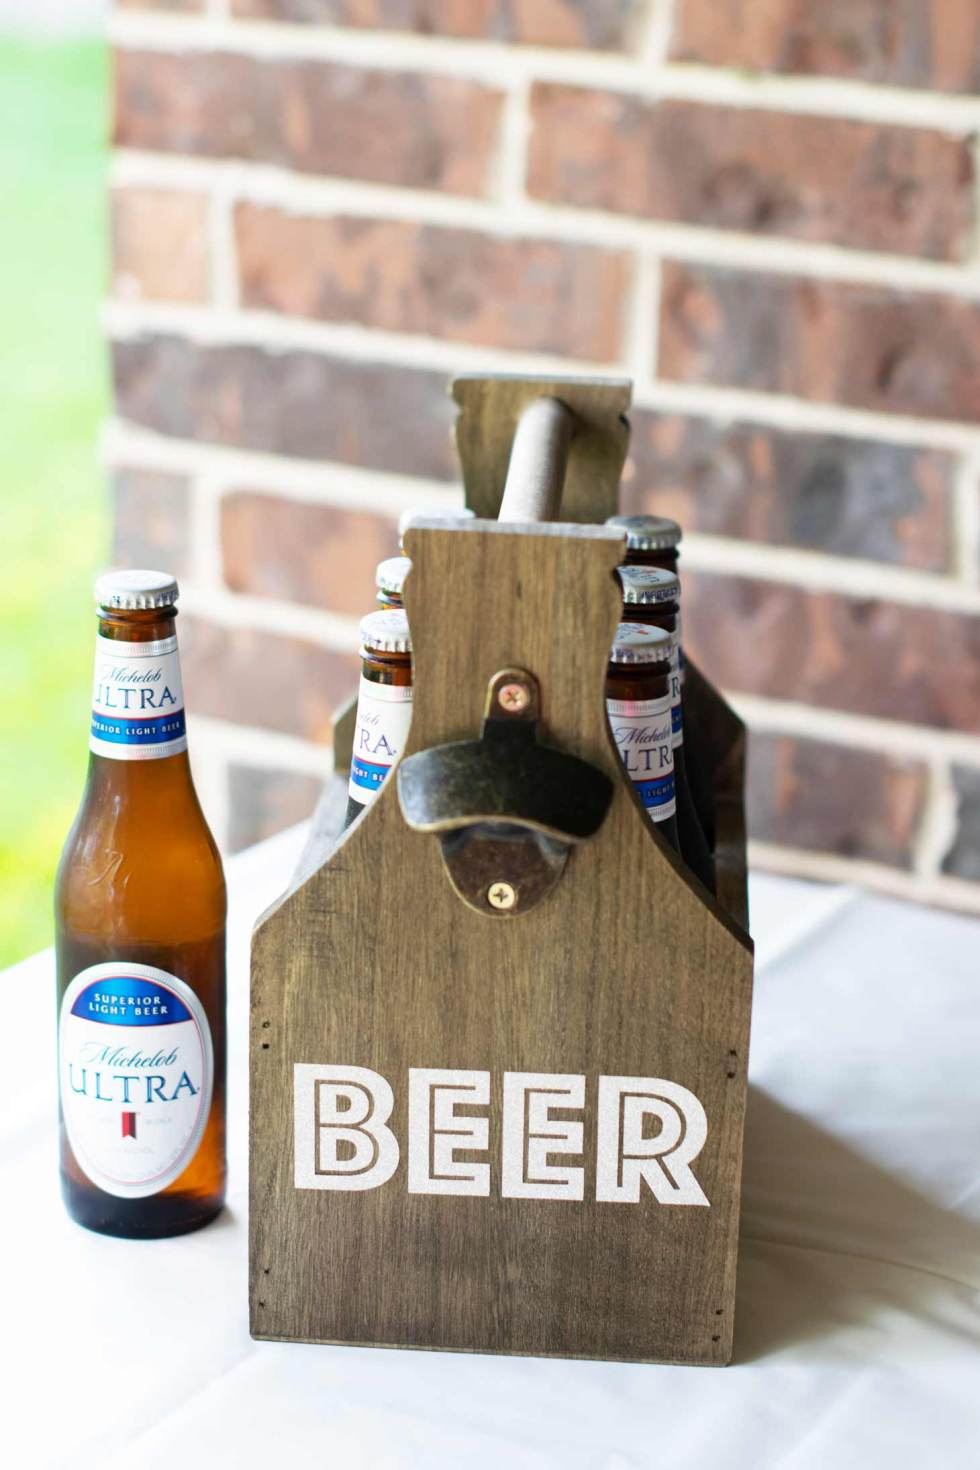 wooden beer holder customized with the word BEER via free SVG.